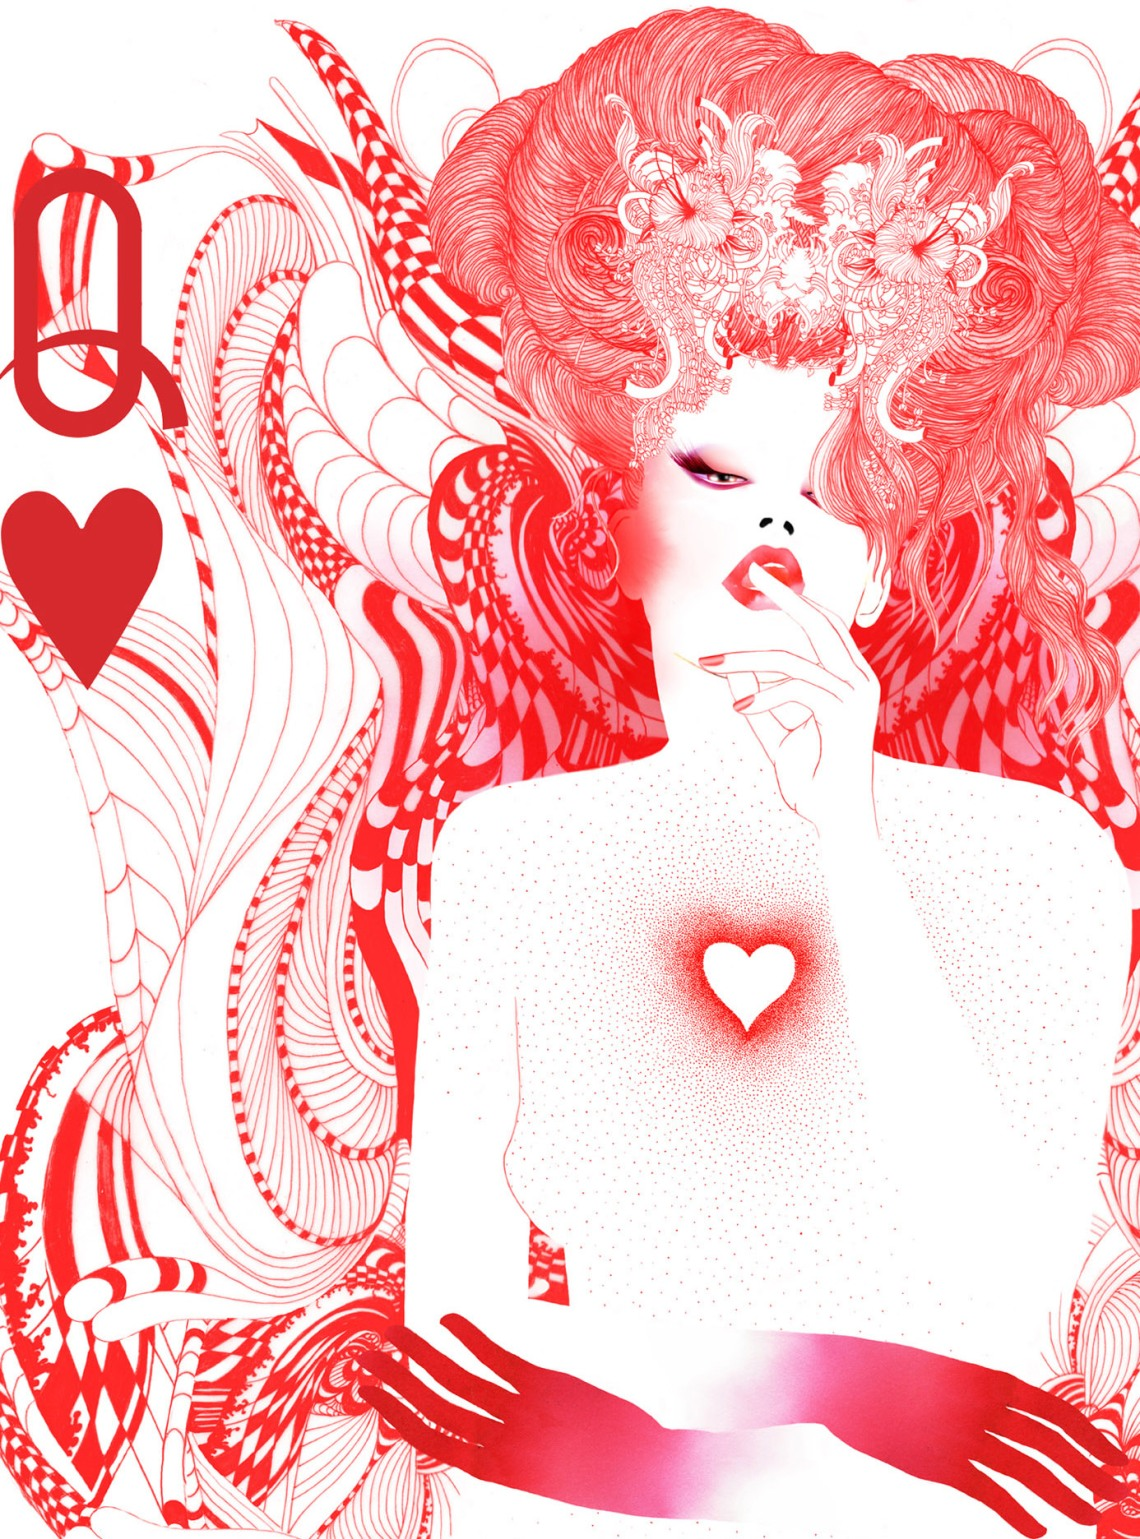 the #queen of #hearts by #noumeda #wia #award #illustration #2015 #playing #cards